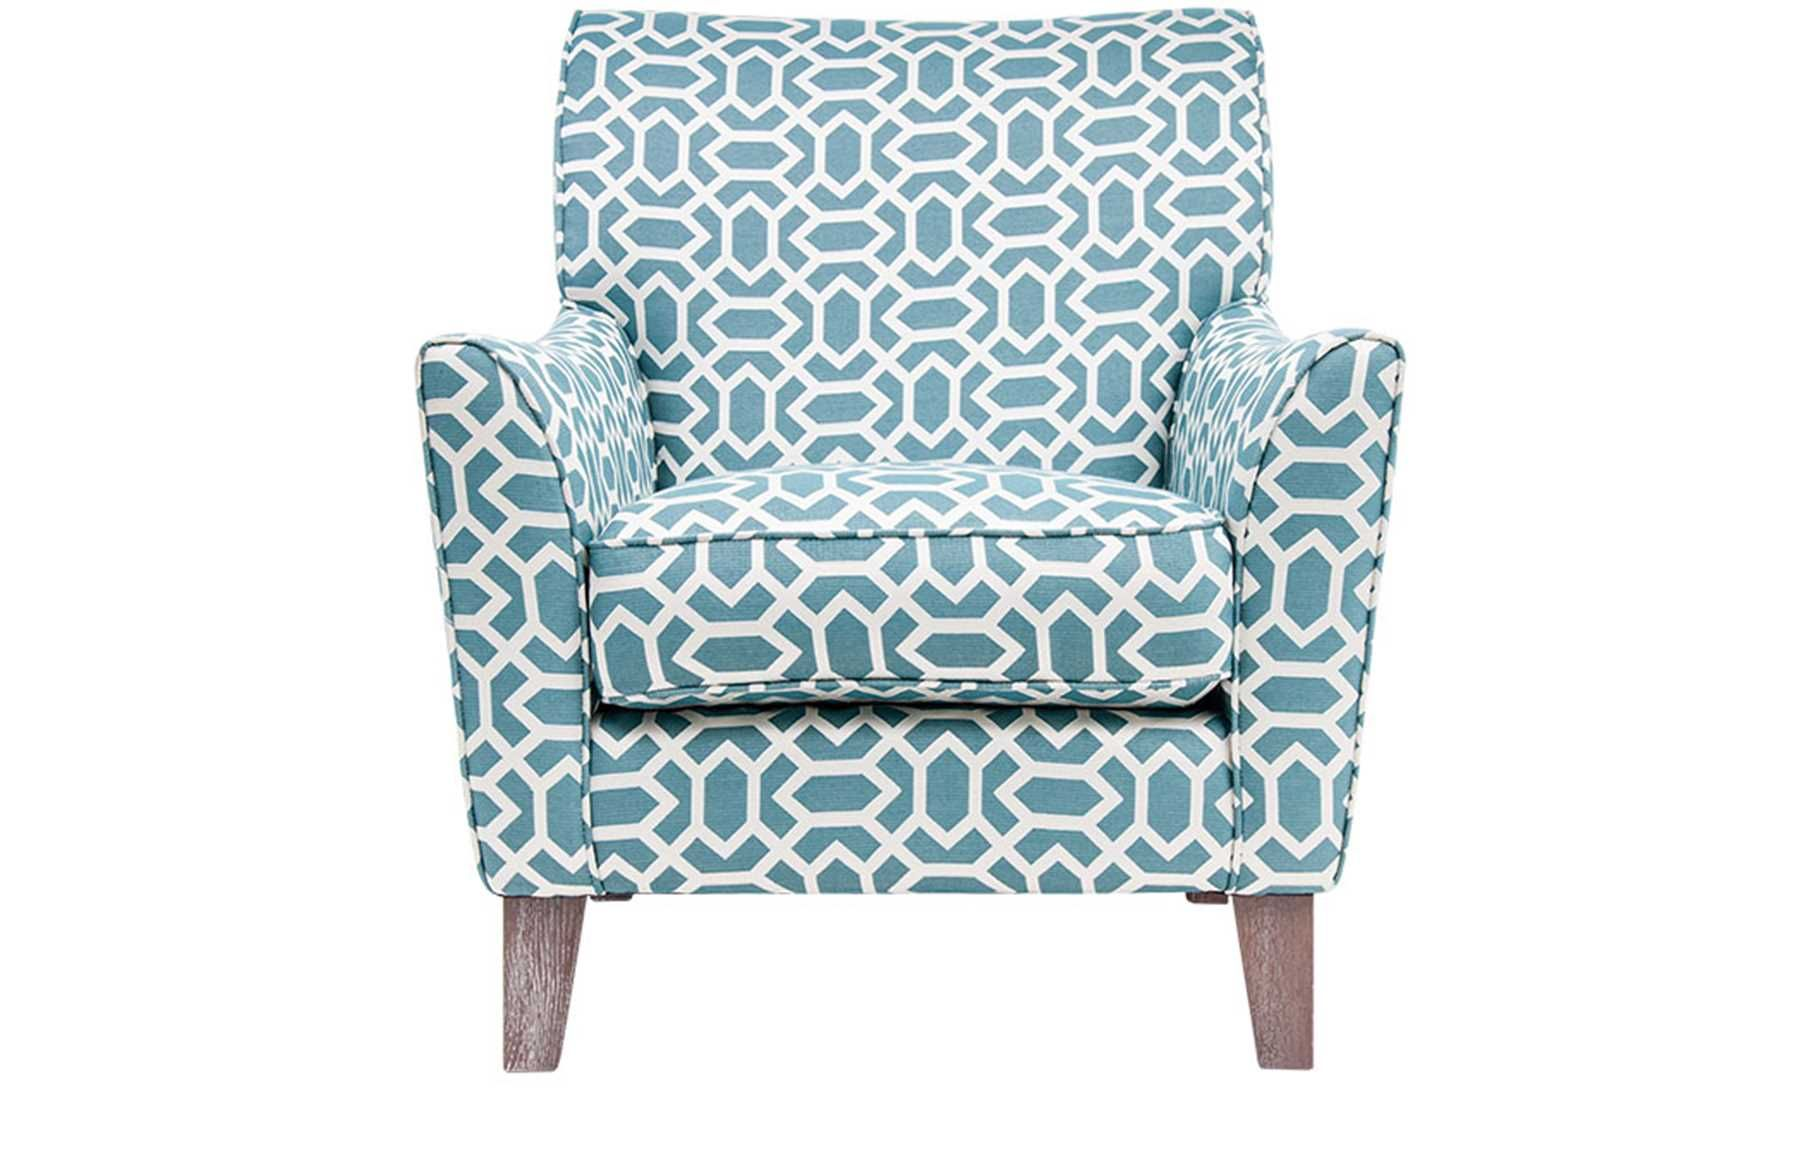 Harford Accent Chair Image 0 Accent chairs, Chair